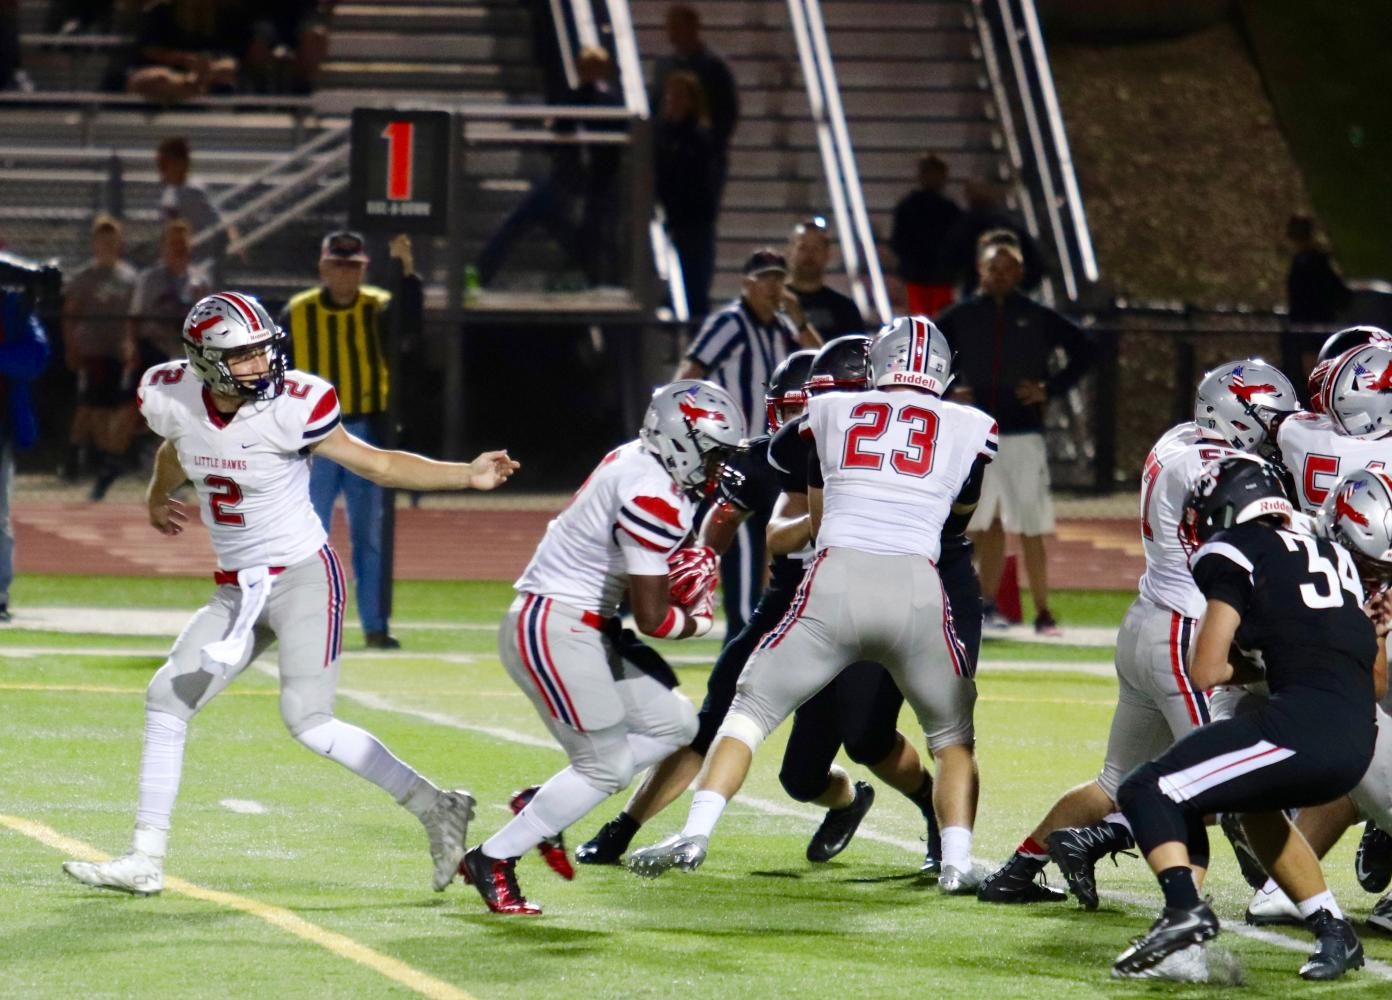 Devontae Foster 18 looks for an opening after receiving the ball from Bryce Hunger 18.